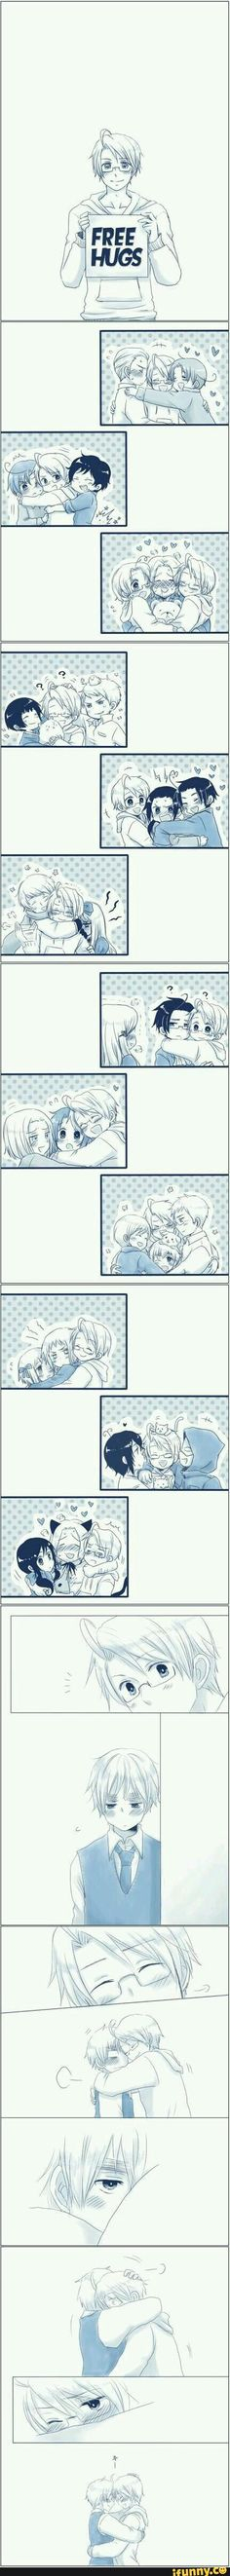 hetalia>>theY ARE SO CUTE USUKKKKKKJKKKJDHDJSH